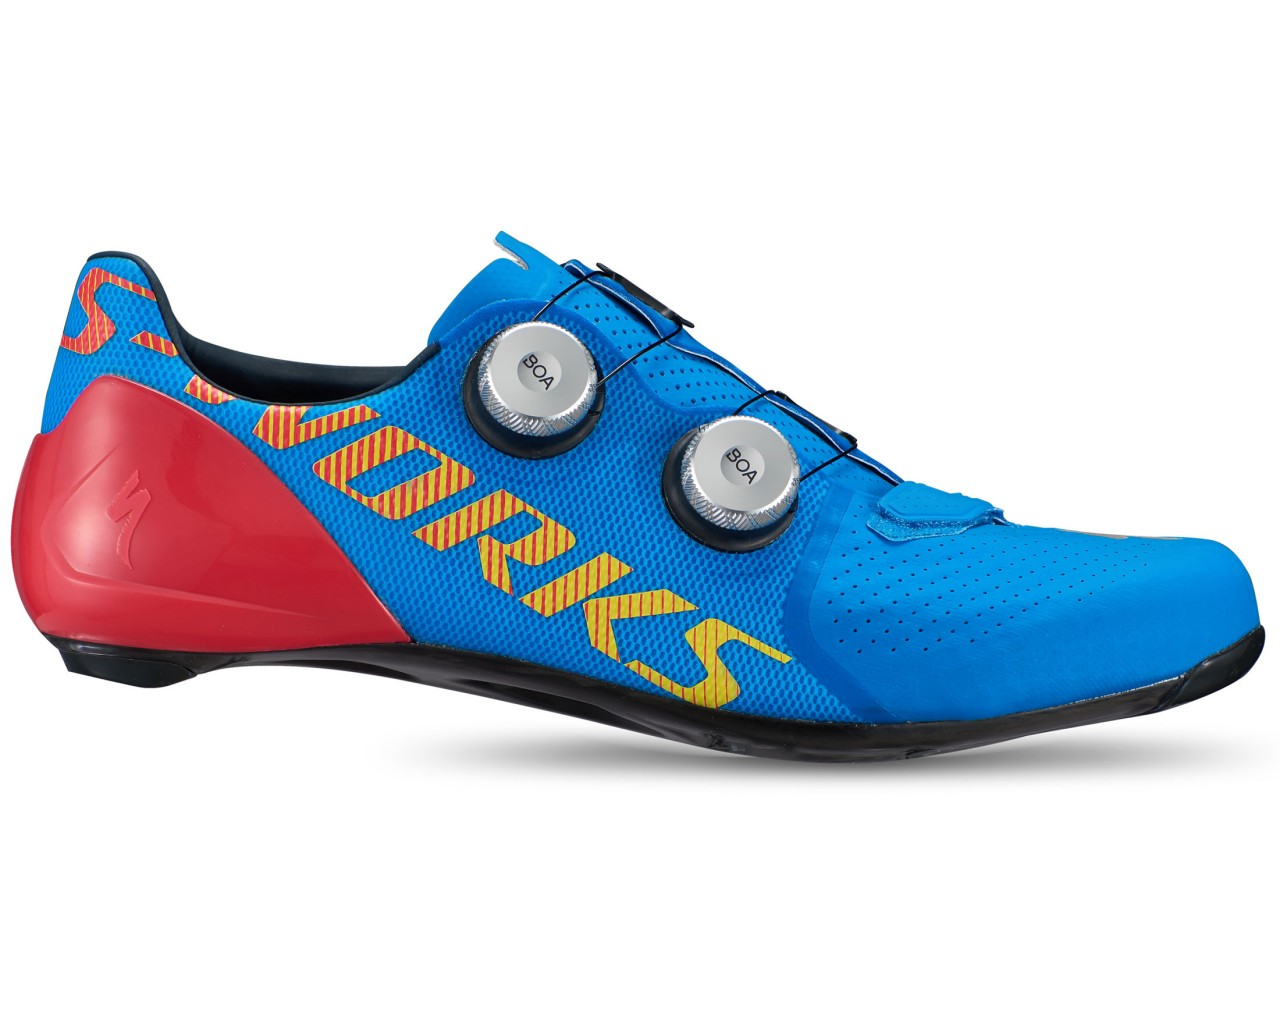 Specialized S-Works 7 Road Bike Shoes | basics